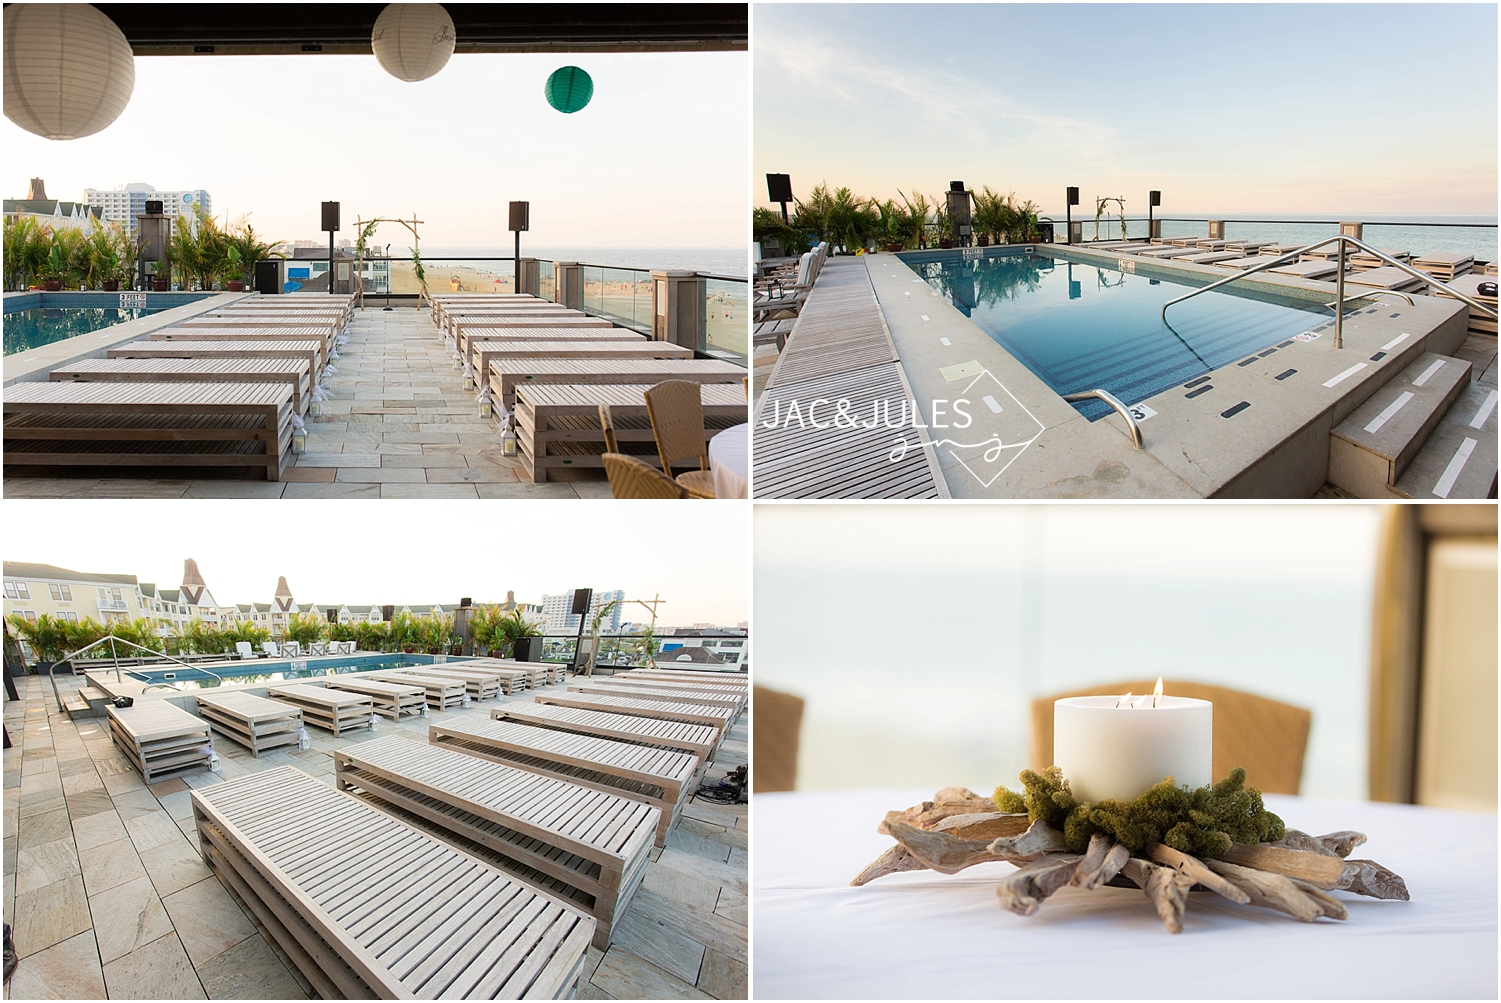 jacnjules photographs wedding ceremony at sunset at Avenue Le Club in Long Branch, NJ